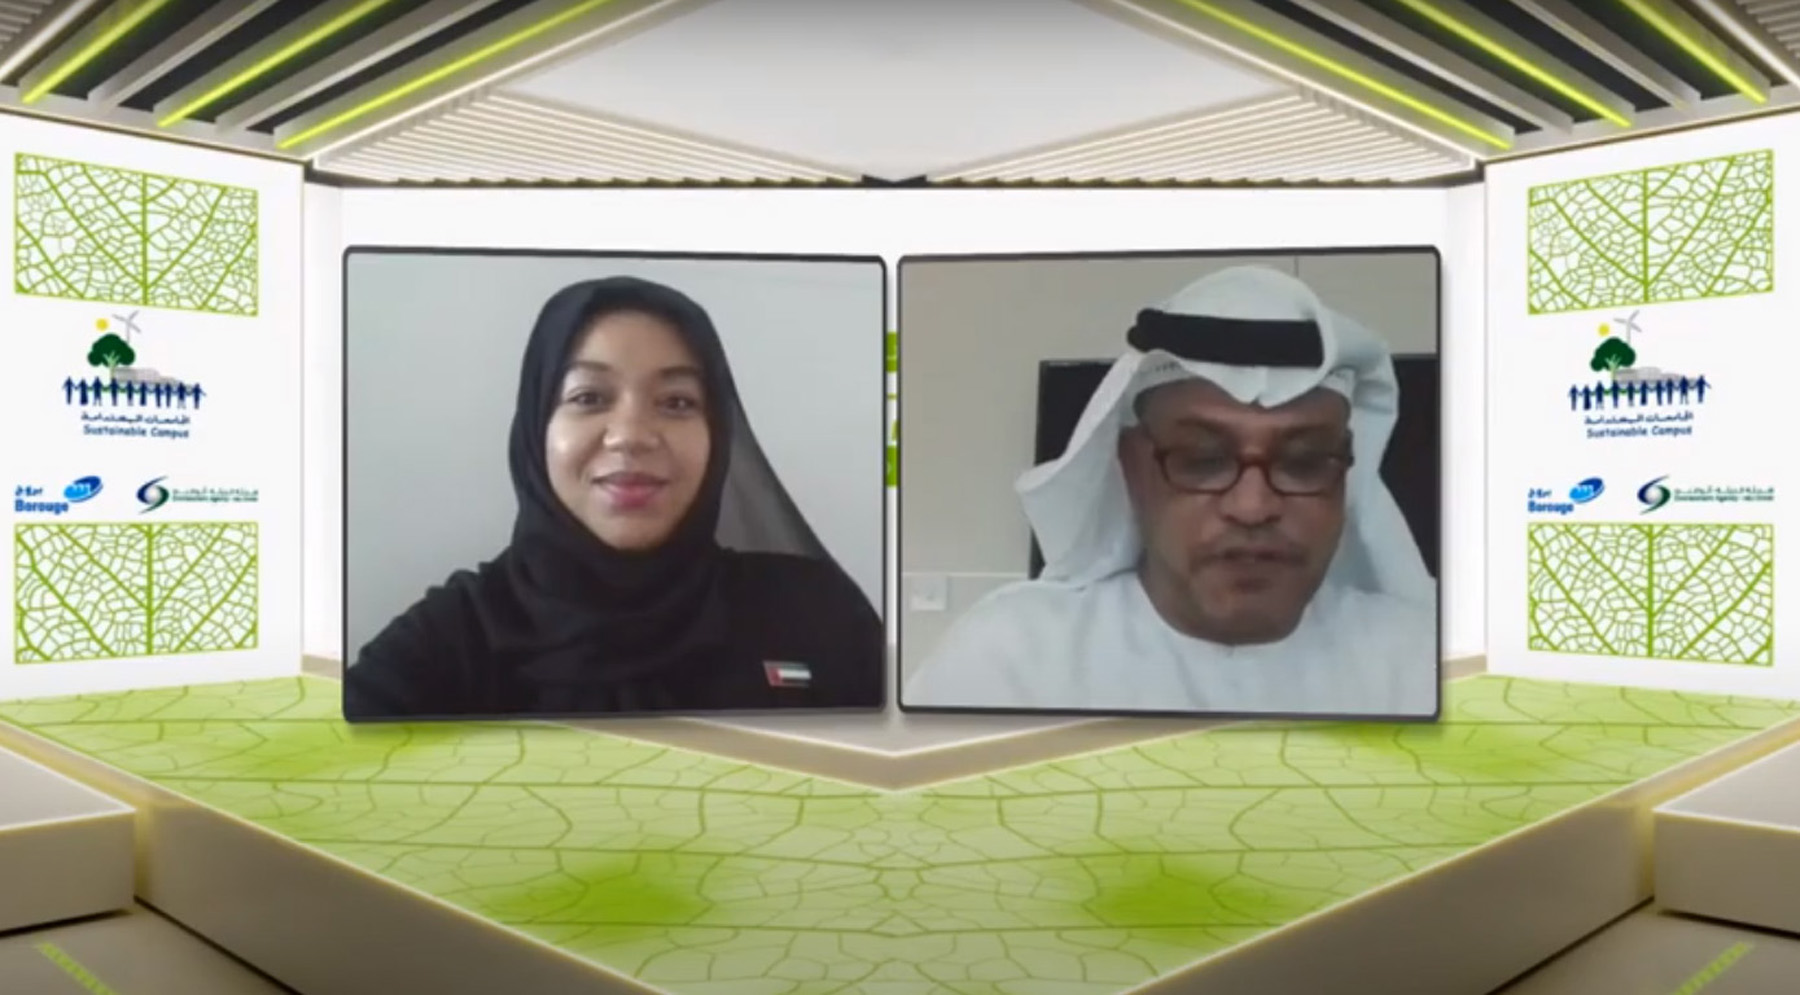 Sustainable Campus Initiative (SCI) Manager Aisha Al Mazrouei with Executive Director of the Environmental Science, Information and Outreach Sectorat EAD, Ahmed Baharoon at the virtual Sustainable Campus Initiative (SCI) ceremony. (Youtube)